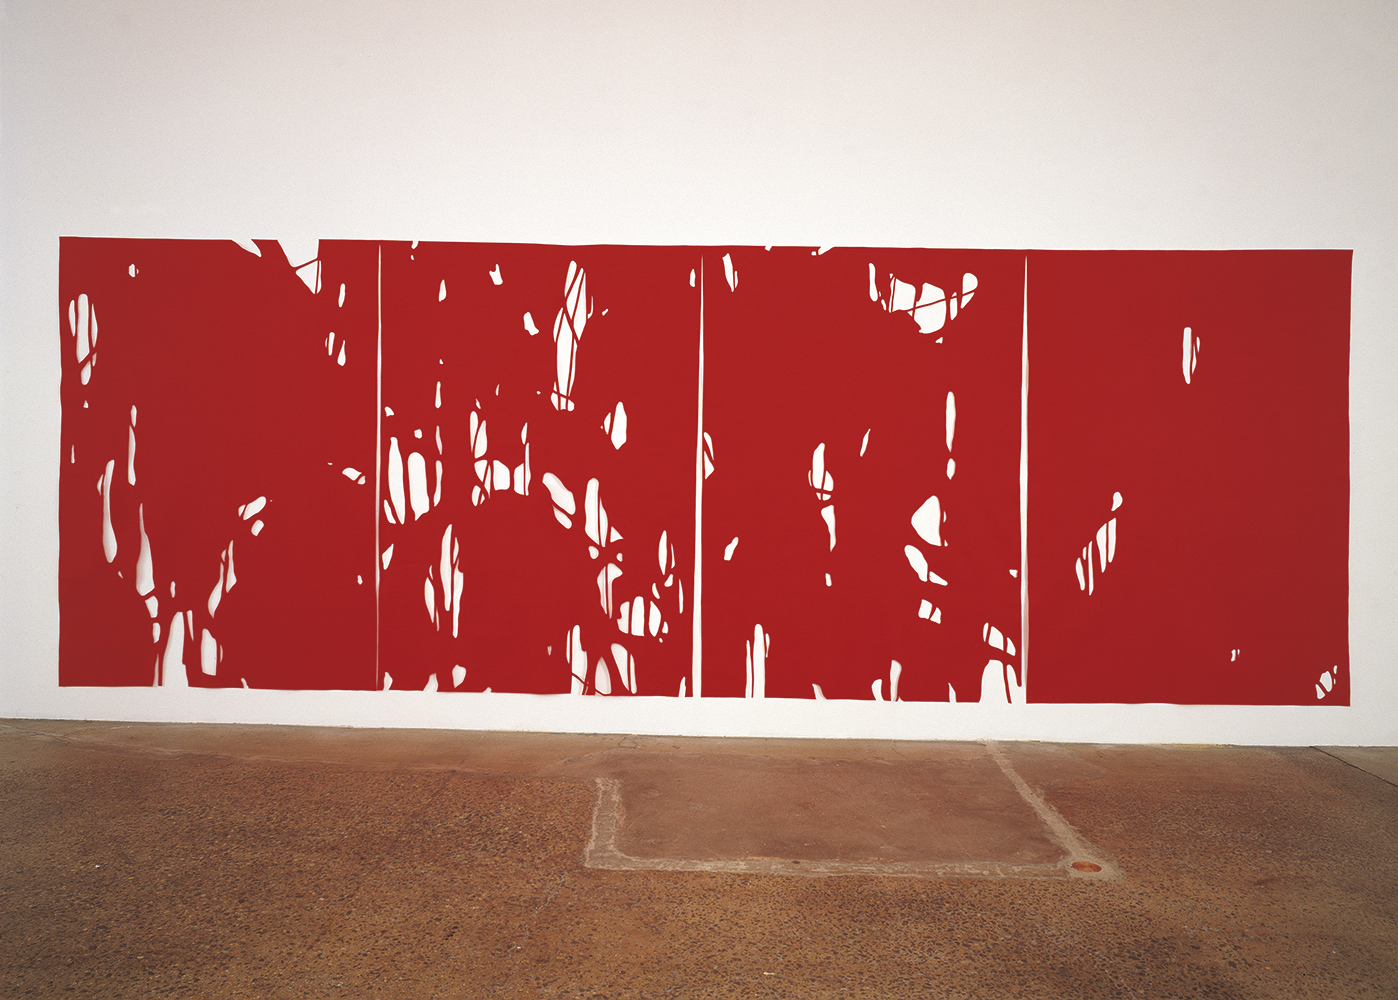 Behind the House III, 1999, Wool felt, 259 x 751 cm